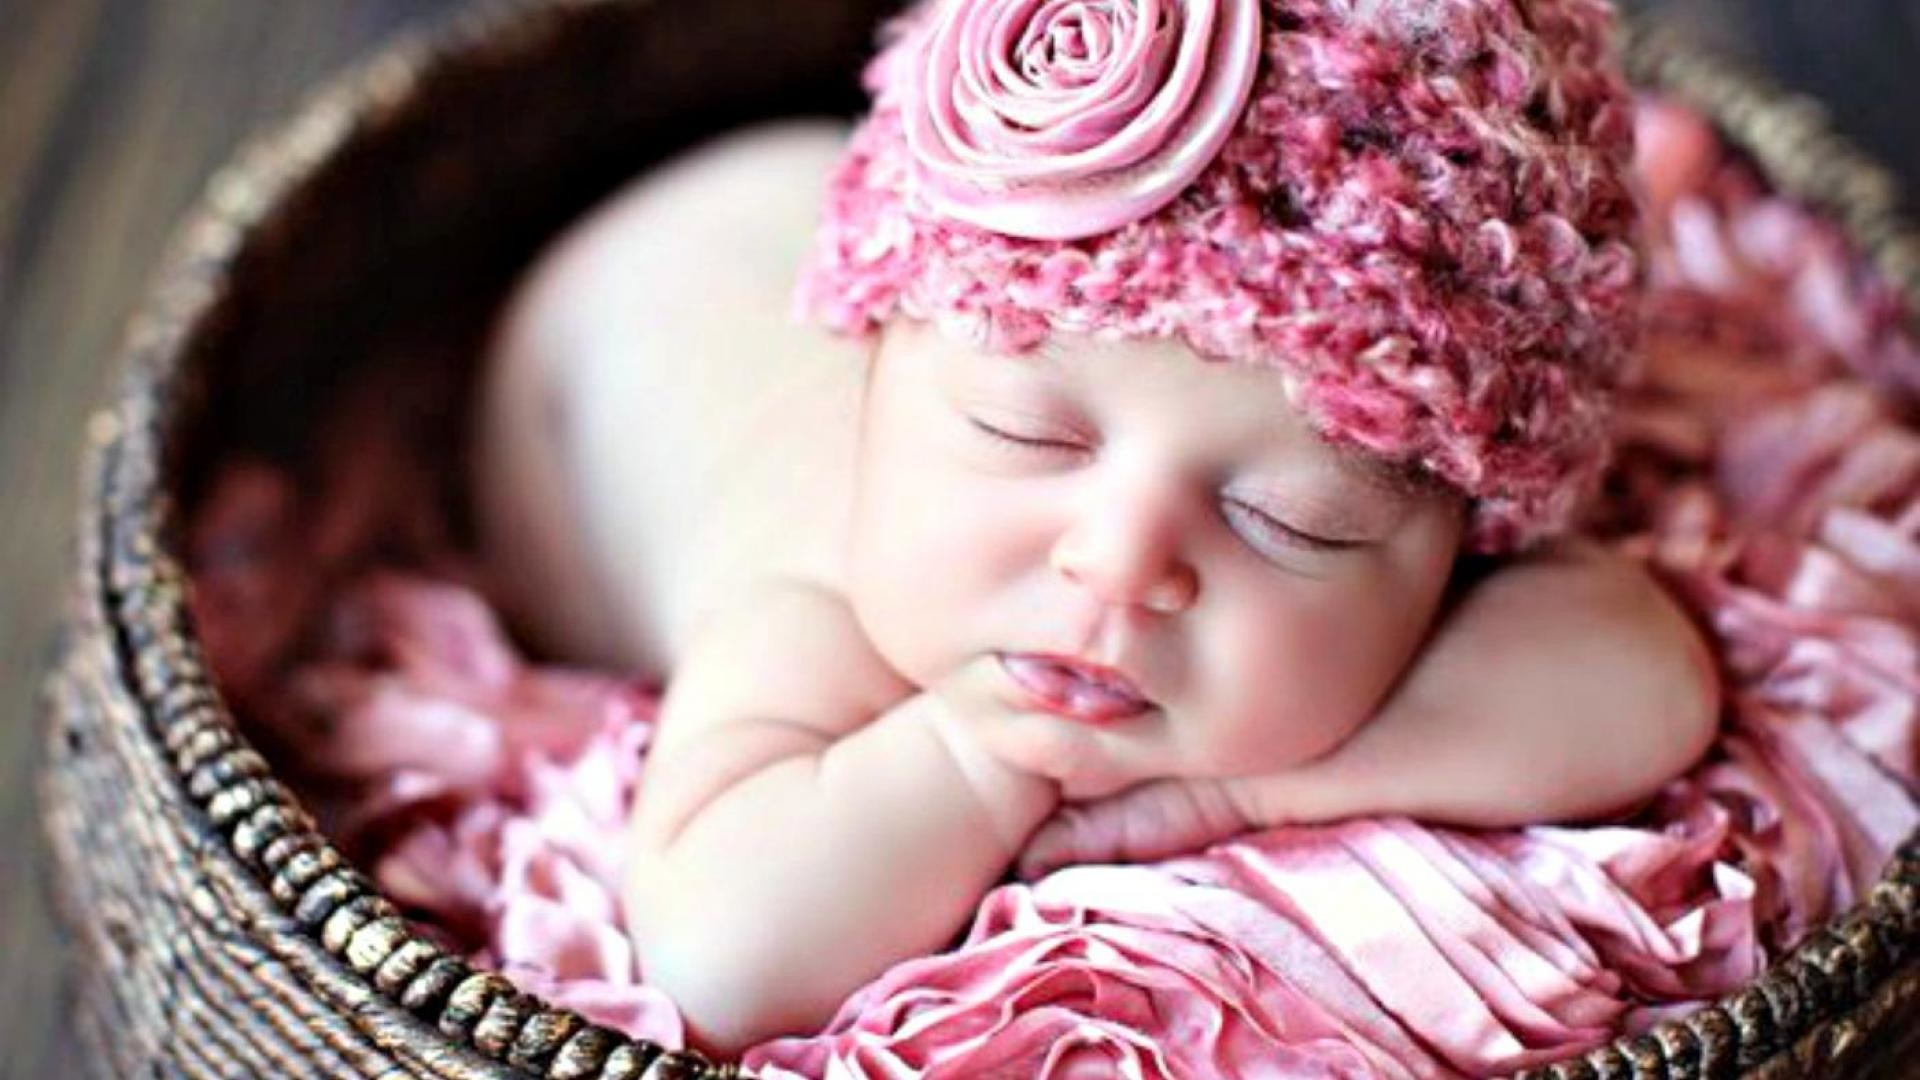 New Born Baby Wallpapers Newborn Baby Wallpaper 62 Images